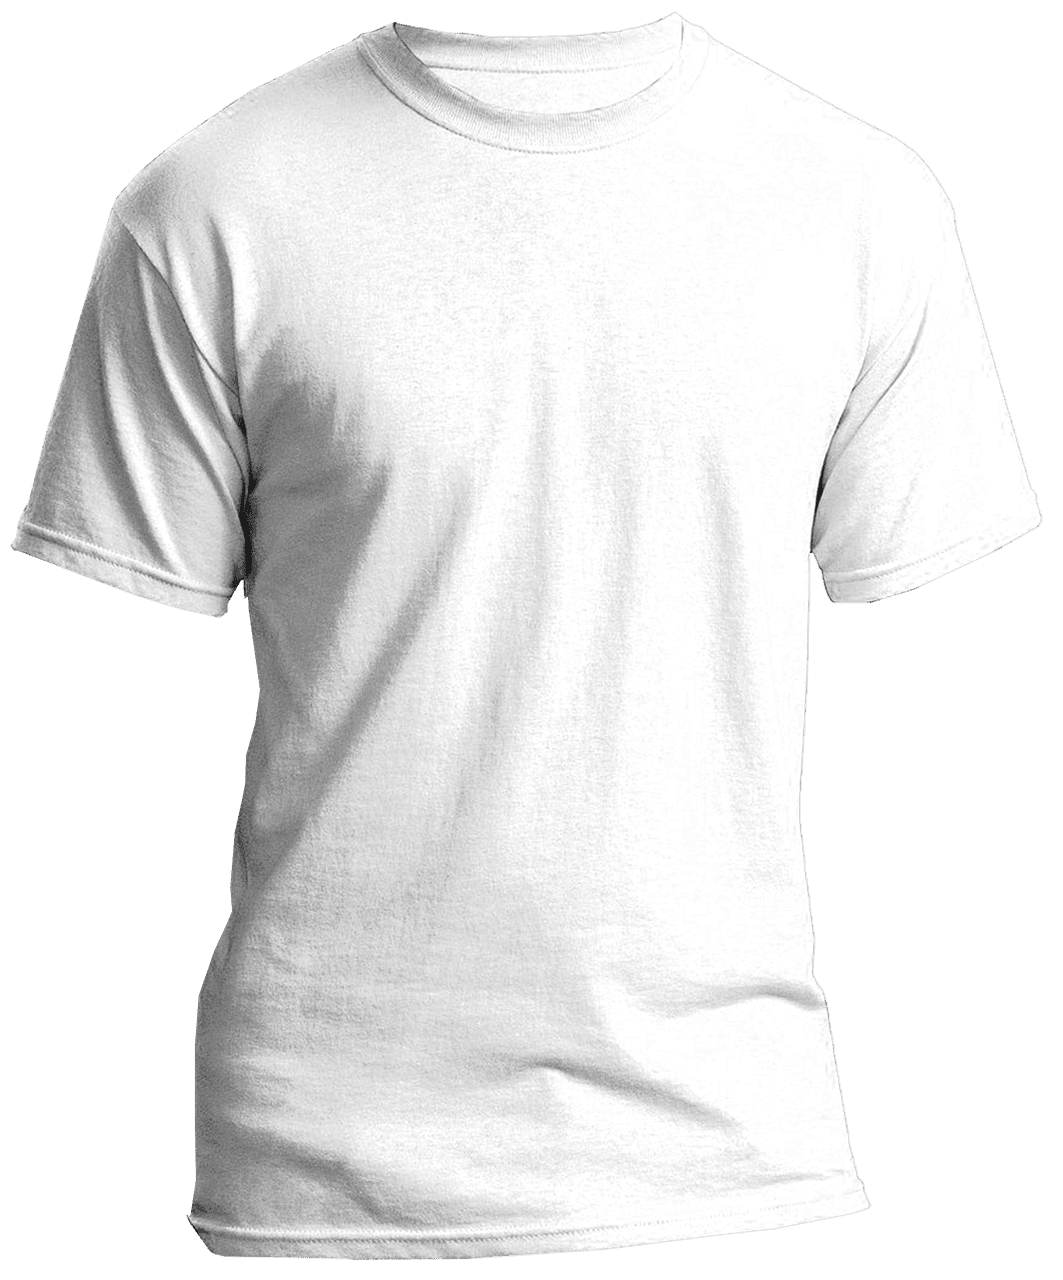 Shirts for Couples that are great for Honeymoons